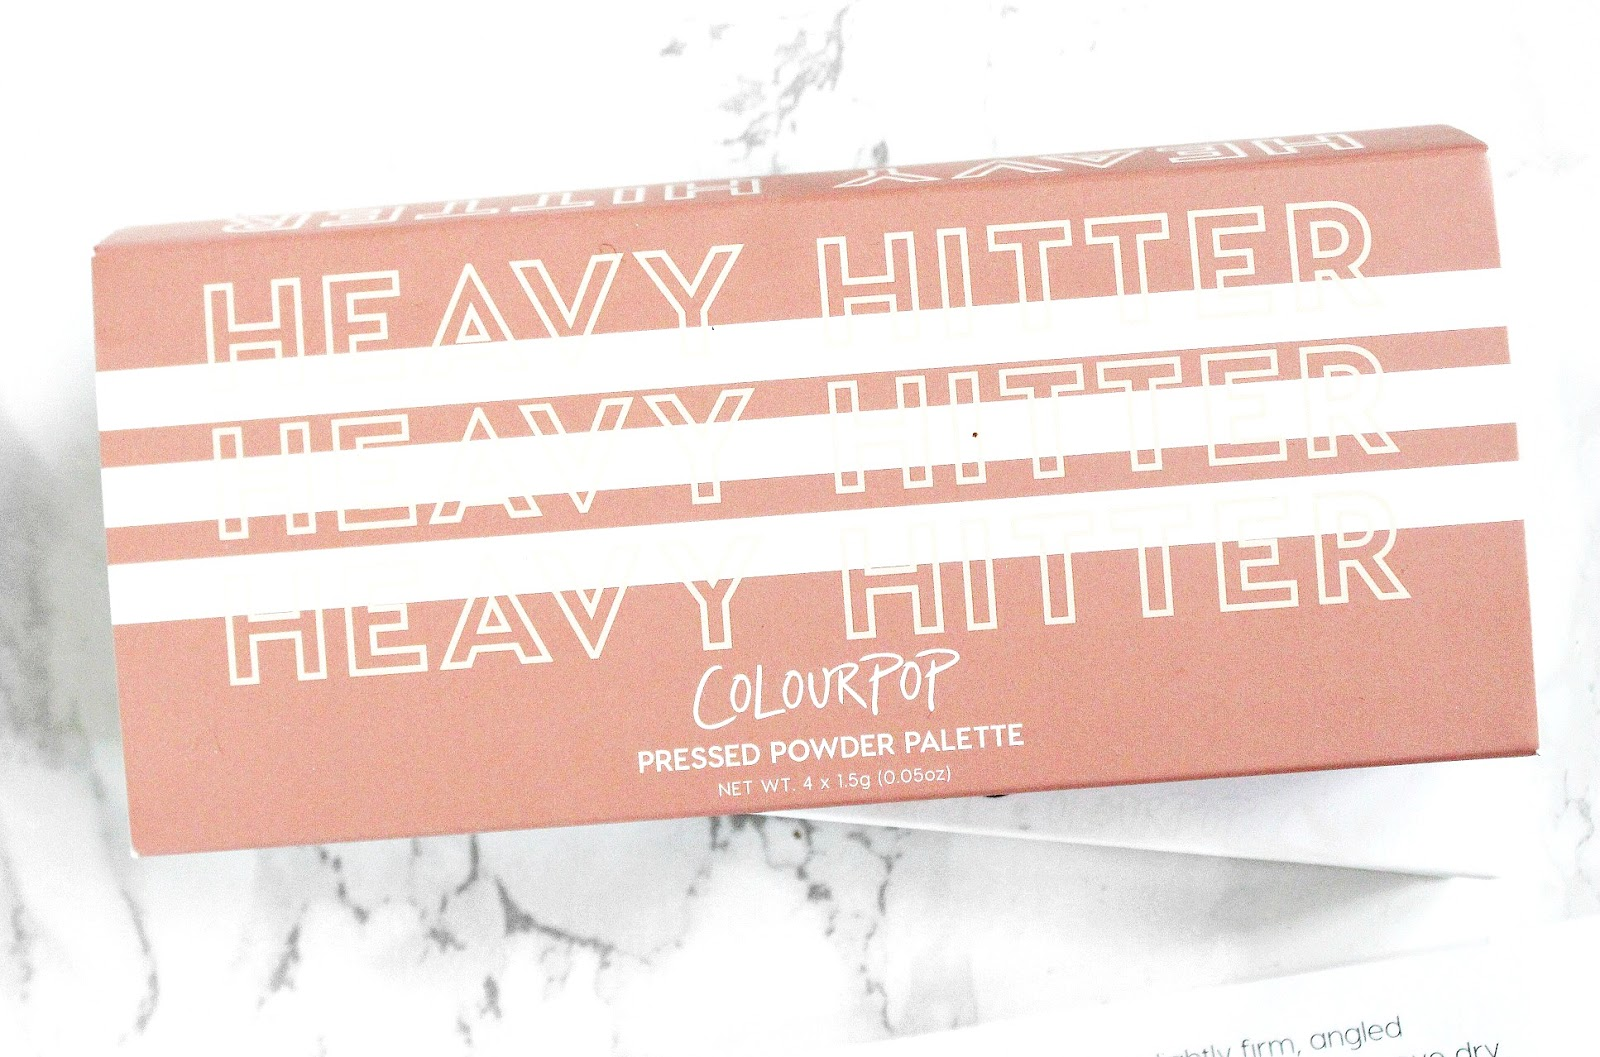 colourpop heavy hitter palette